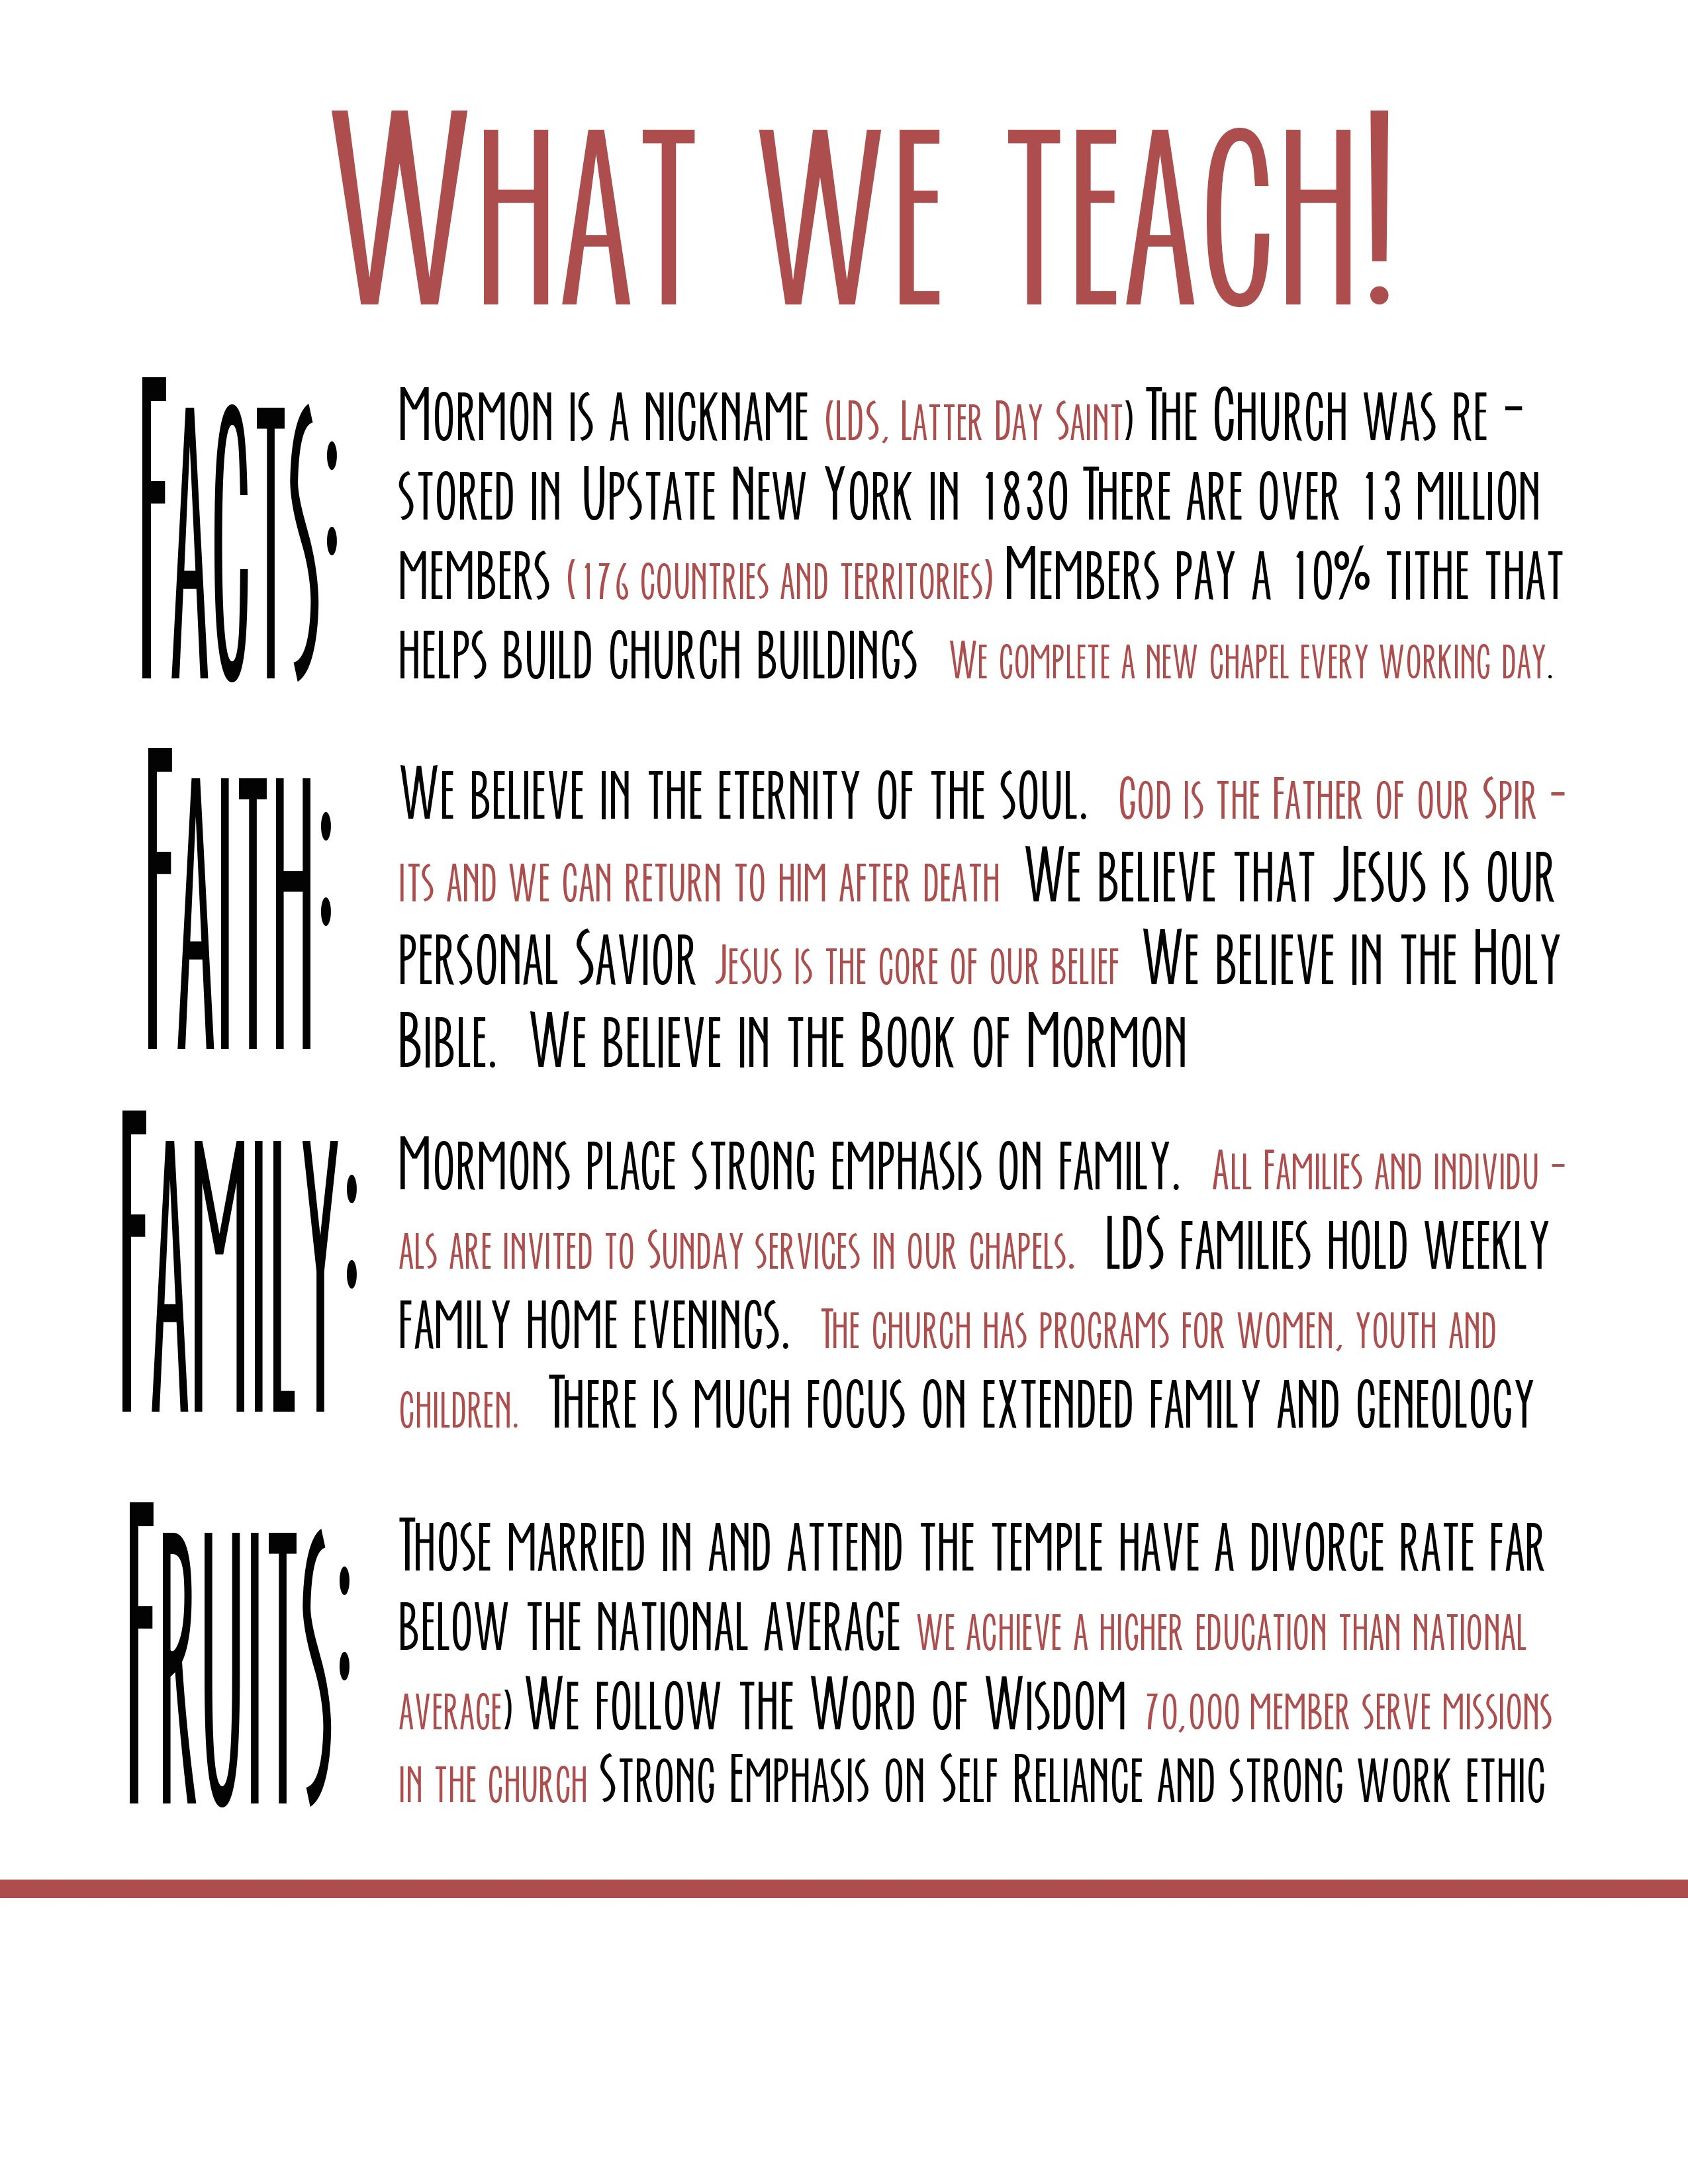 What Are Effective Ways To Share The Gospel With Others